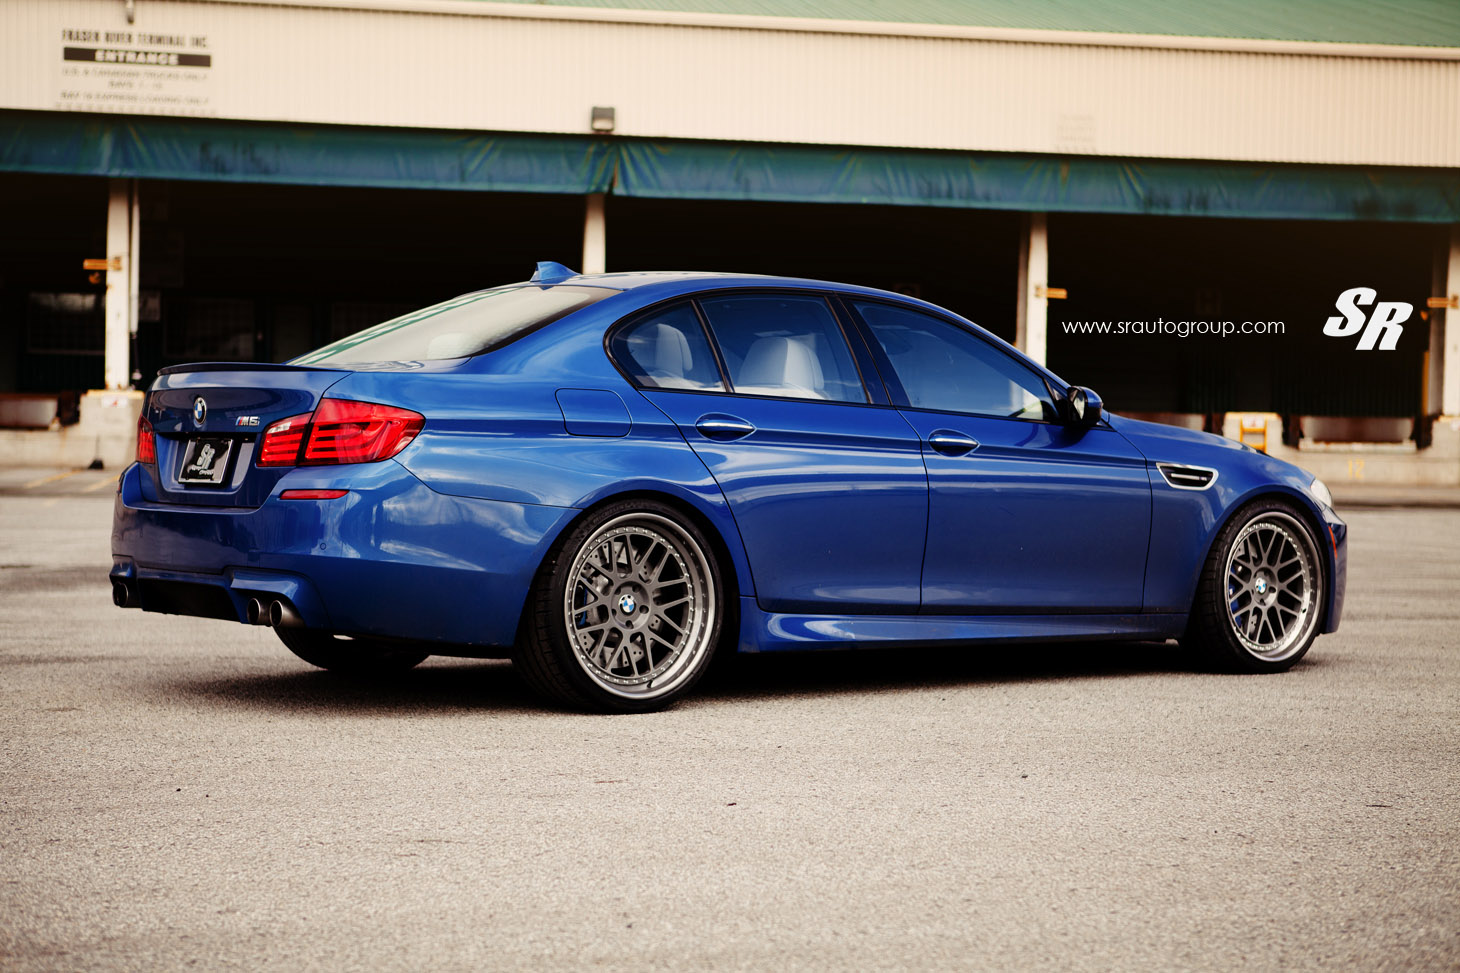 Sr Auto Enhances Bmw F10 M5